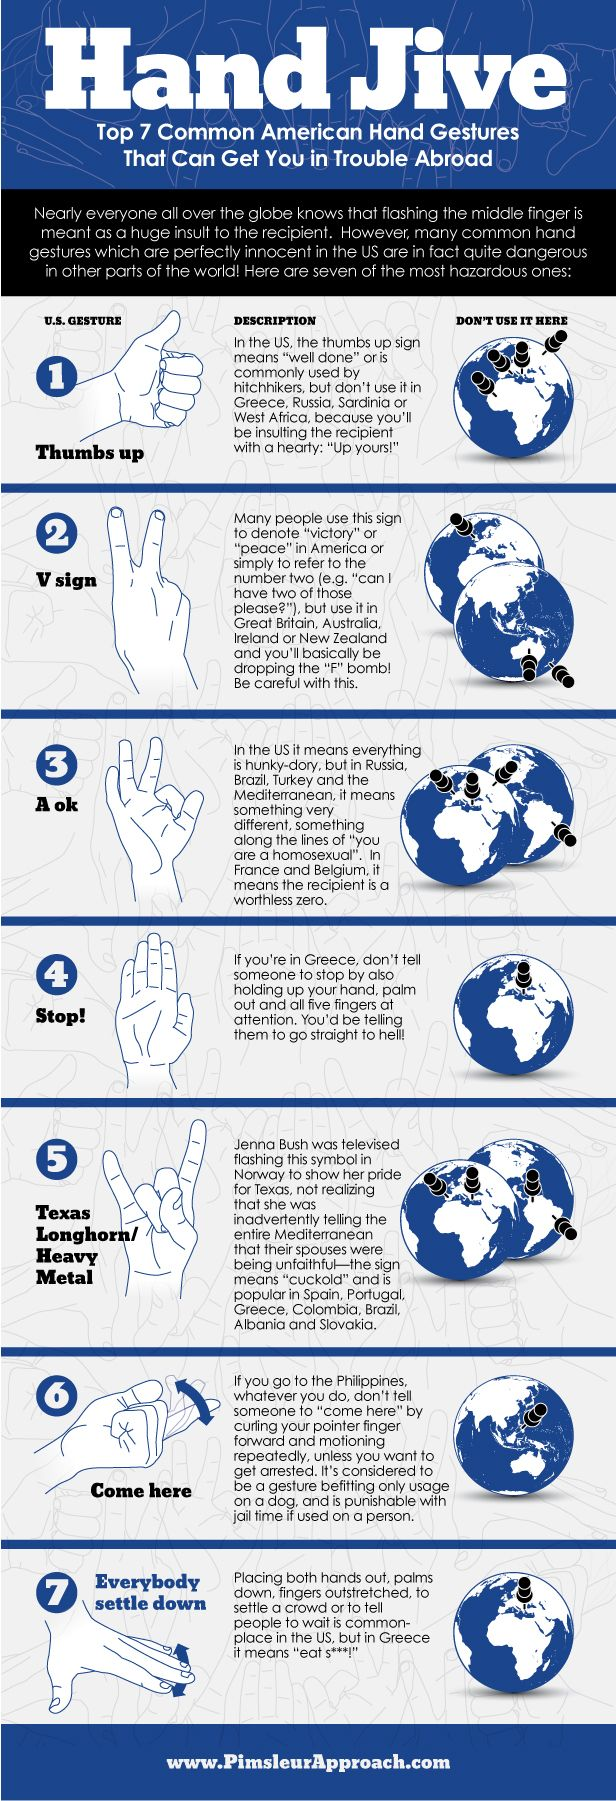 Top 7 Common American Hand Gestures That Can Get You in Trouble Abroad Infographic | Linguistics Girl